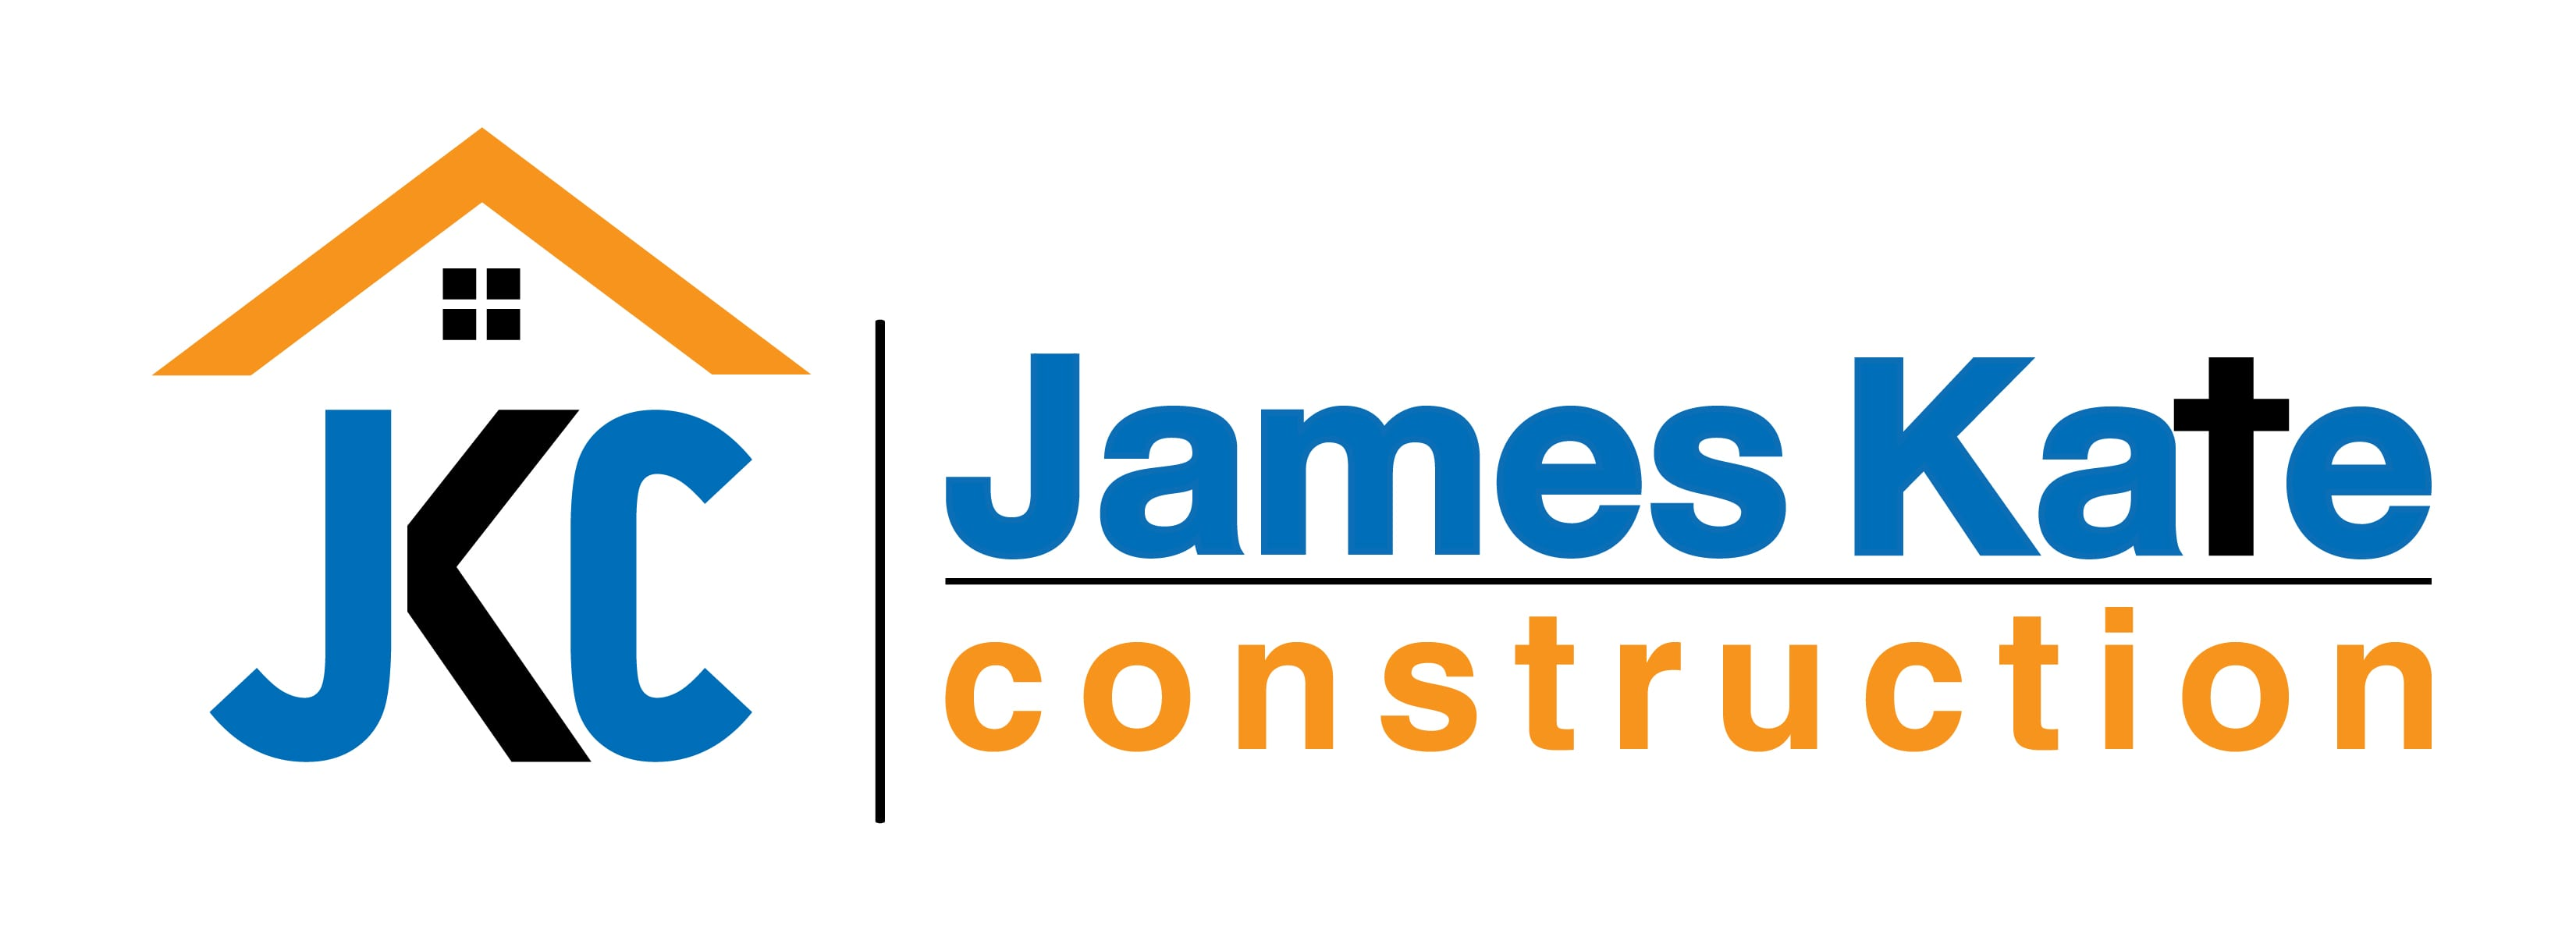 James Kate Construction: Roofing, Painting & Windows is a Leading Roofing Contractor In Mansfield, TX